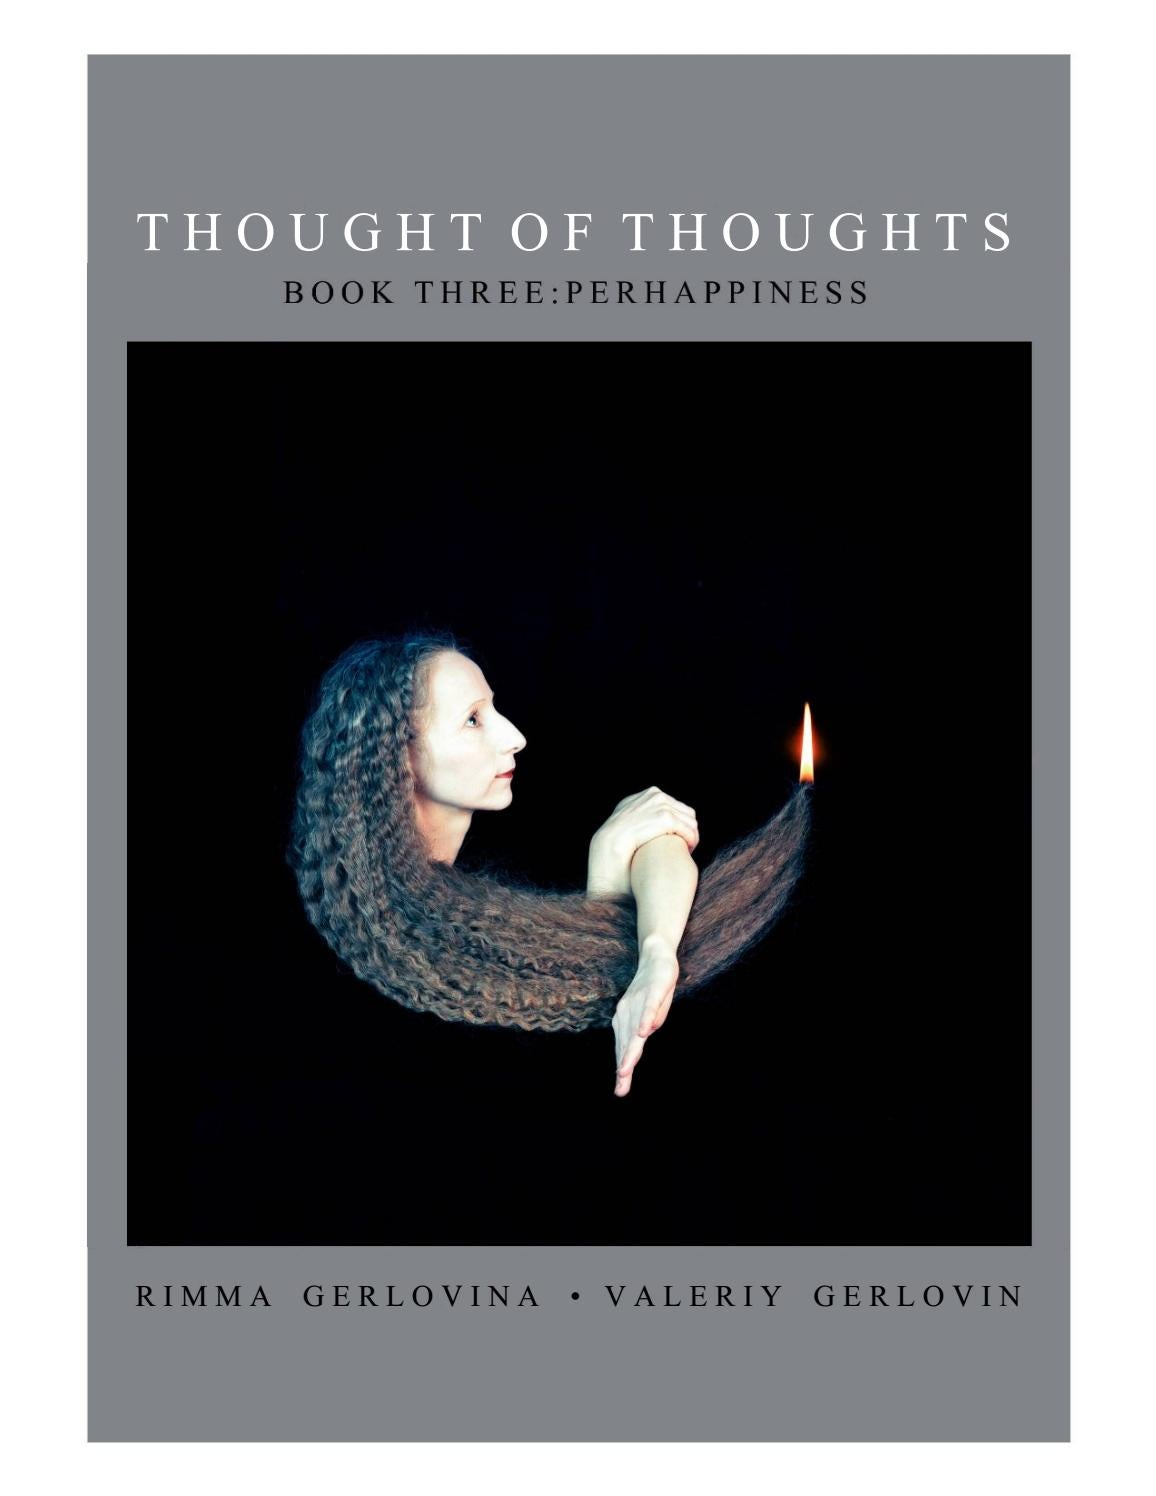 Rimma Gerlovina Valeriy Gerlovin Thought of Thoughts: Book 3